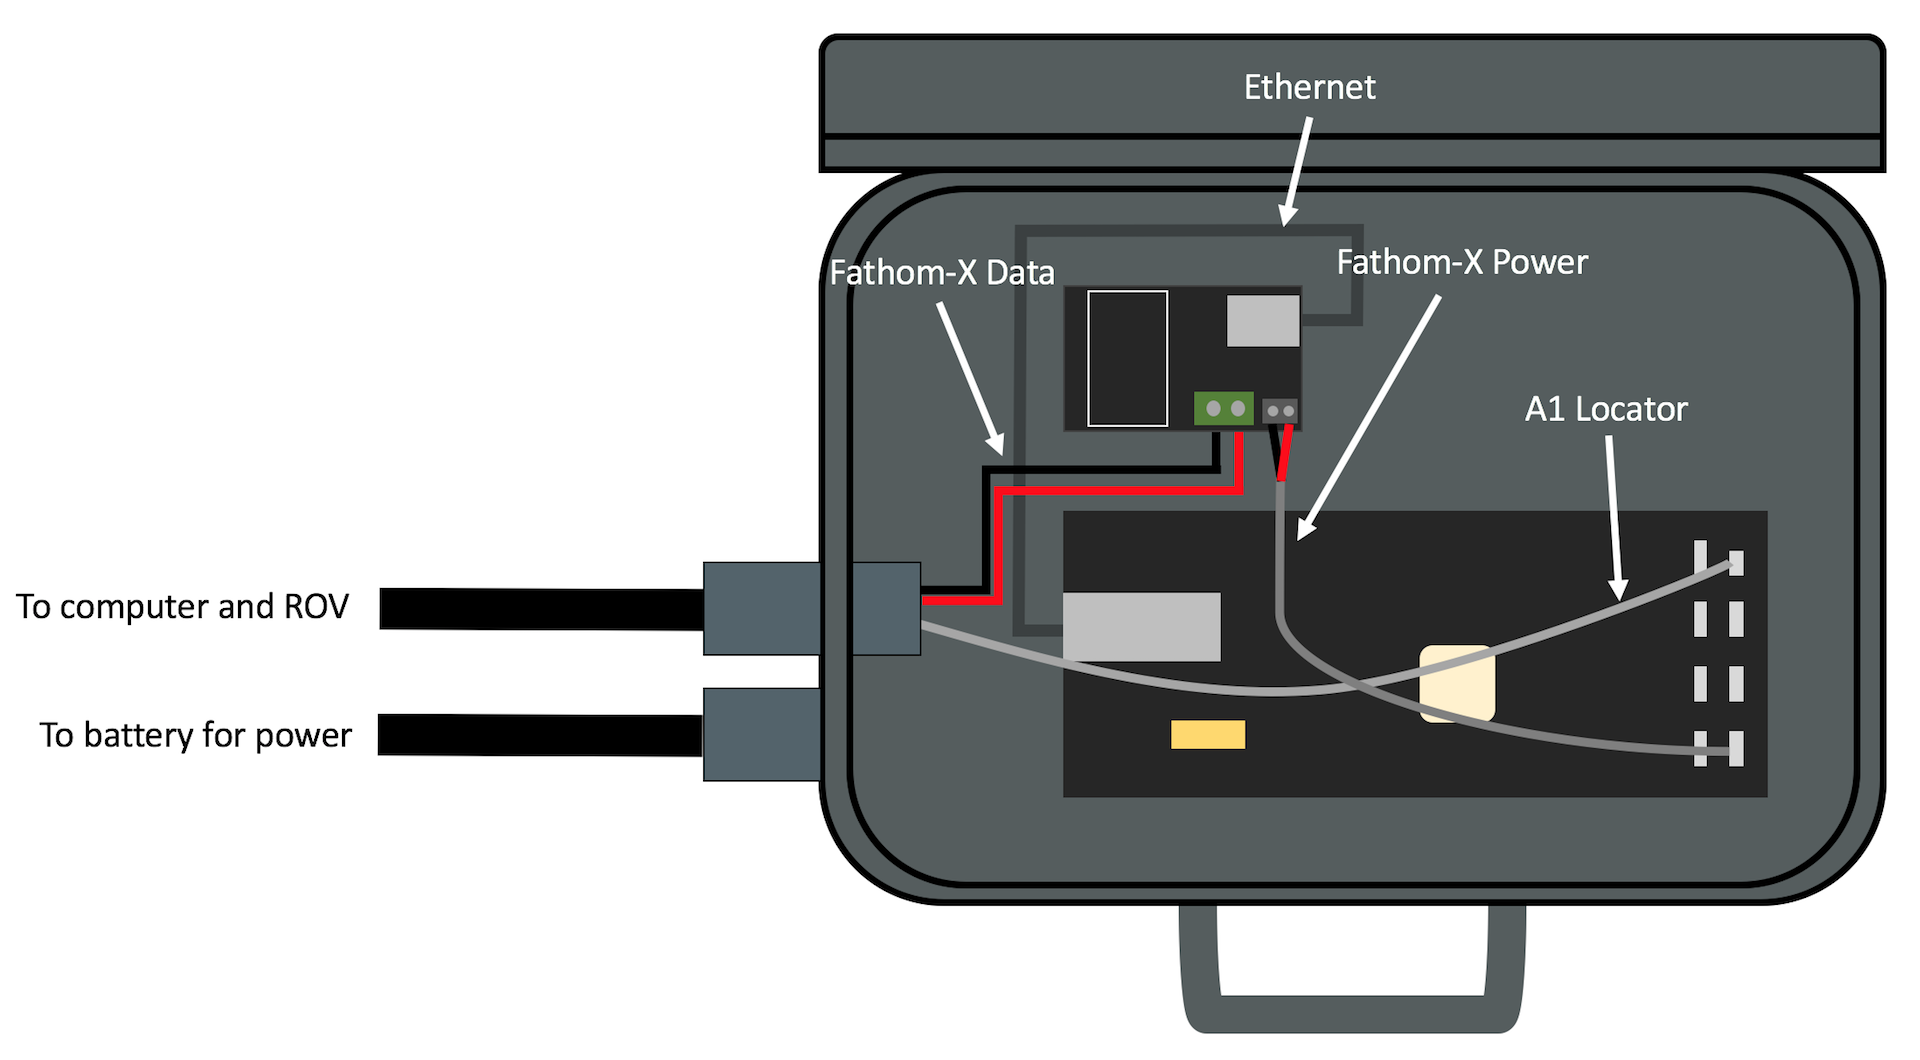 Here's a diagram of what we'll be connecting inside the box: